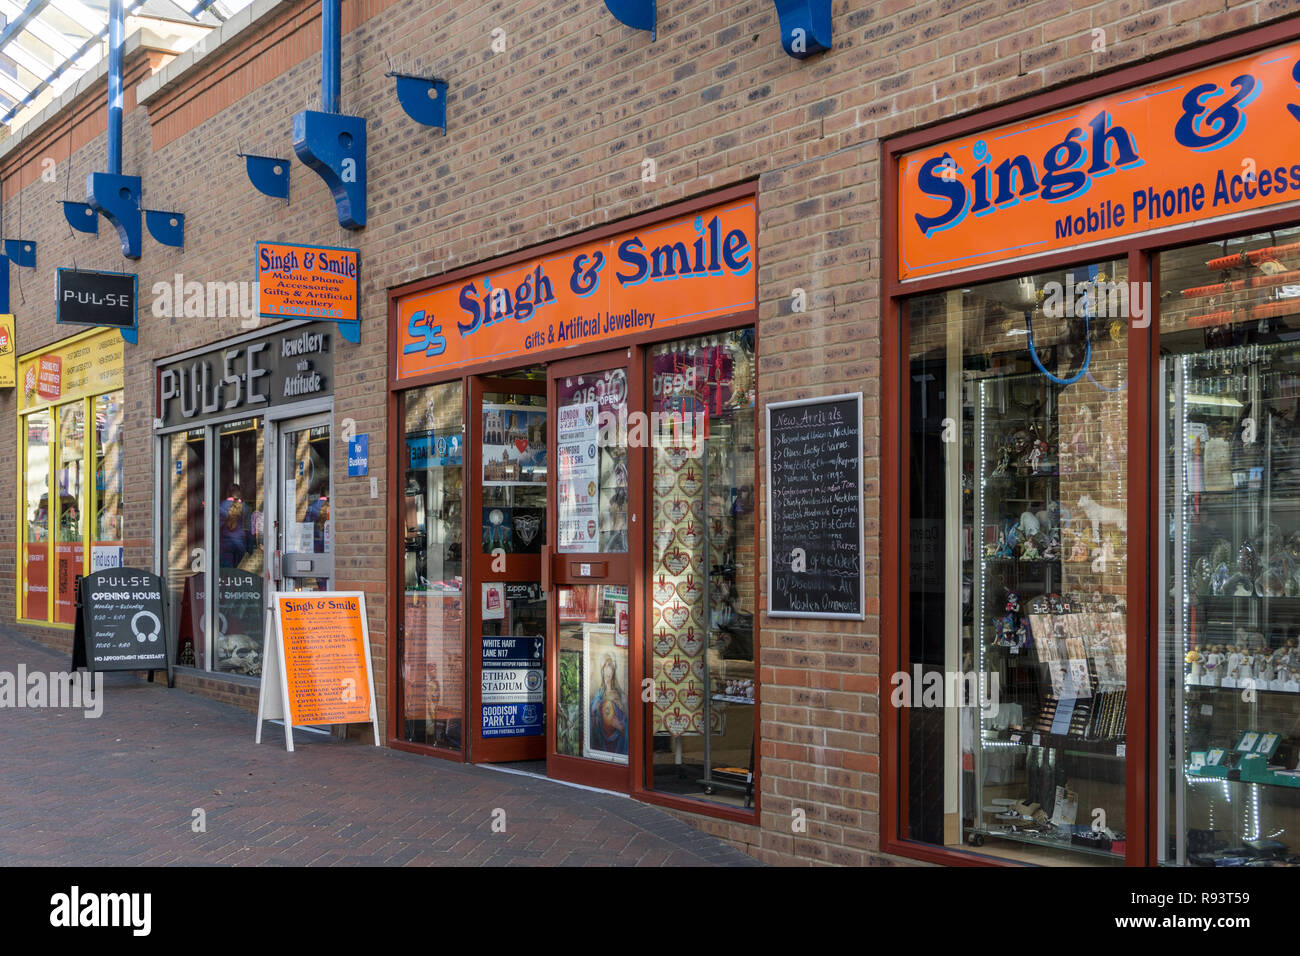 Singh & Smile, a humorous name for a shop selling gifts and artificial jewelry, Northampton, UK - Stock Image